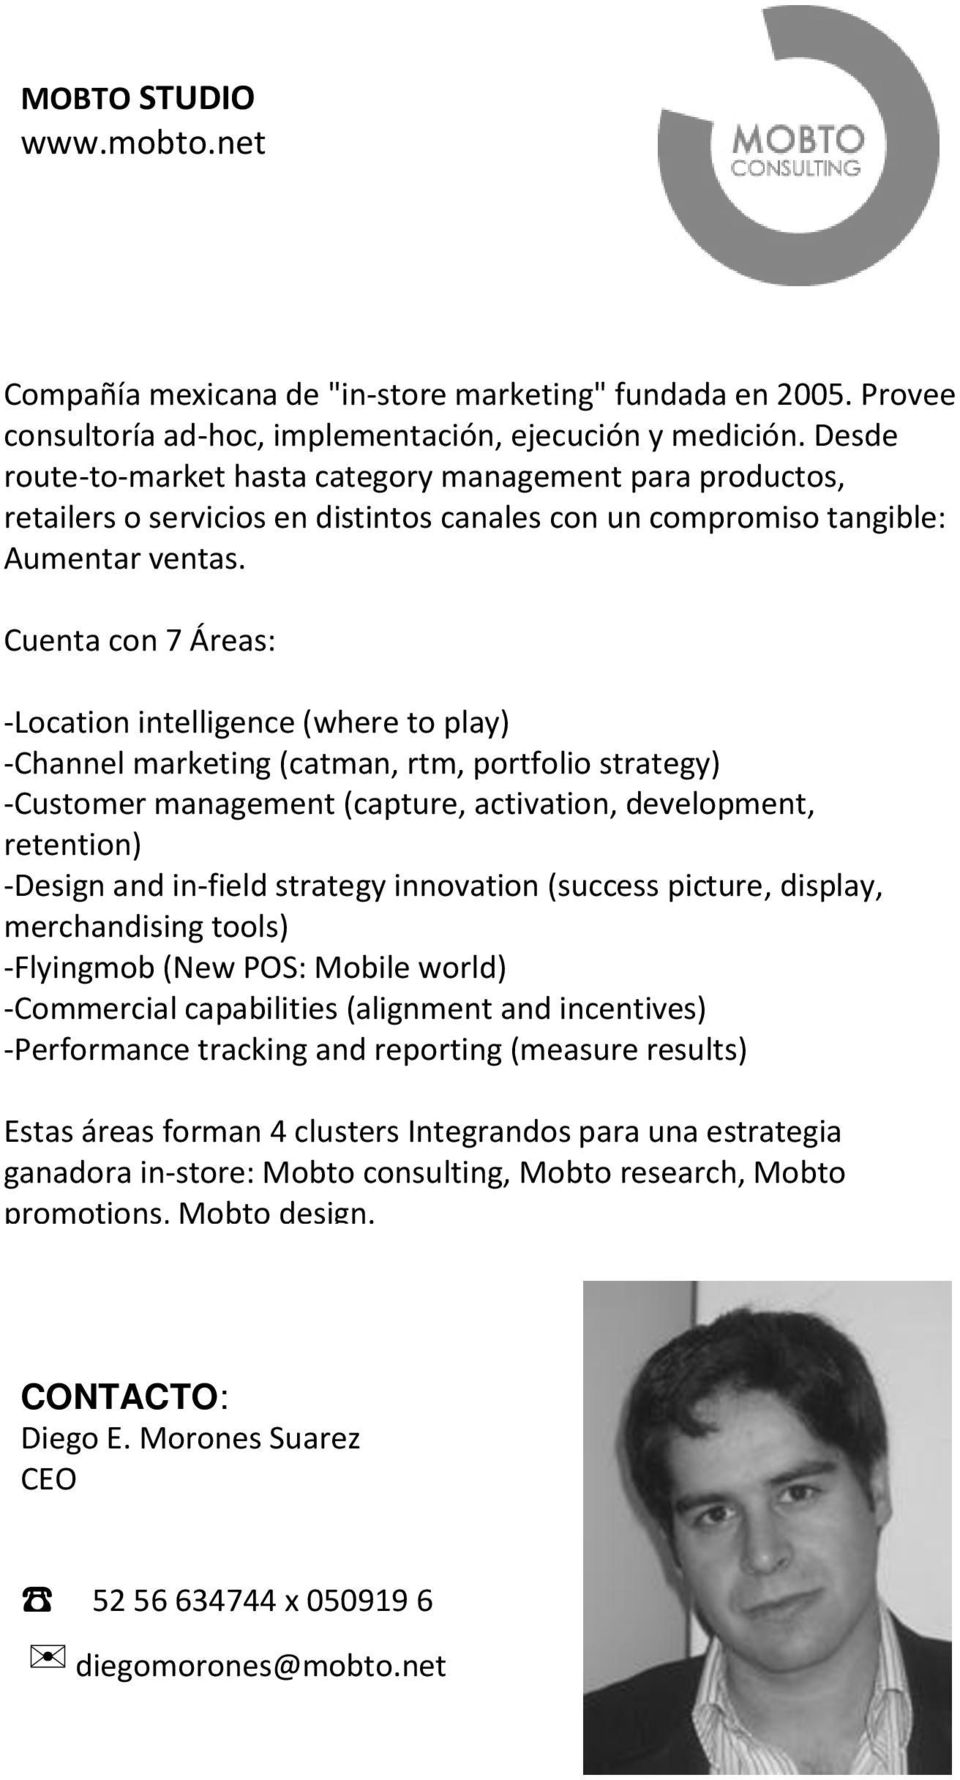 Cuenta con 7 Áreas: -Location intelligence (where to play) -Channel marketing (catman, rtm, portfolio strategy) -Customer management (capture, activation, development, retention) -Design and in-field